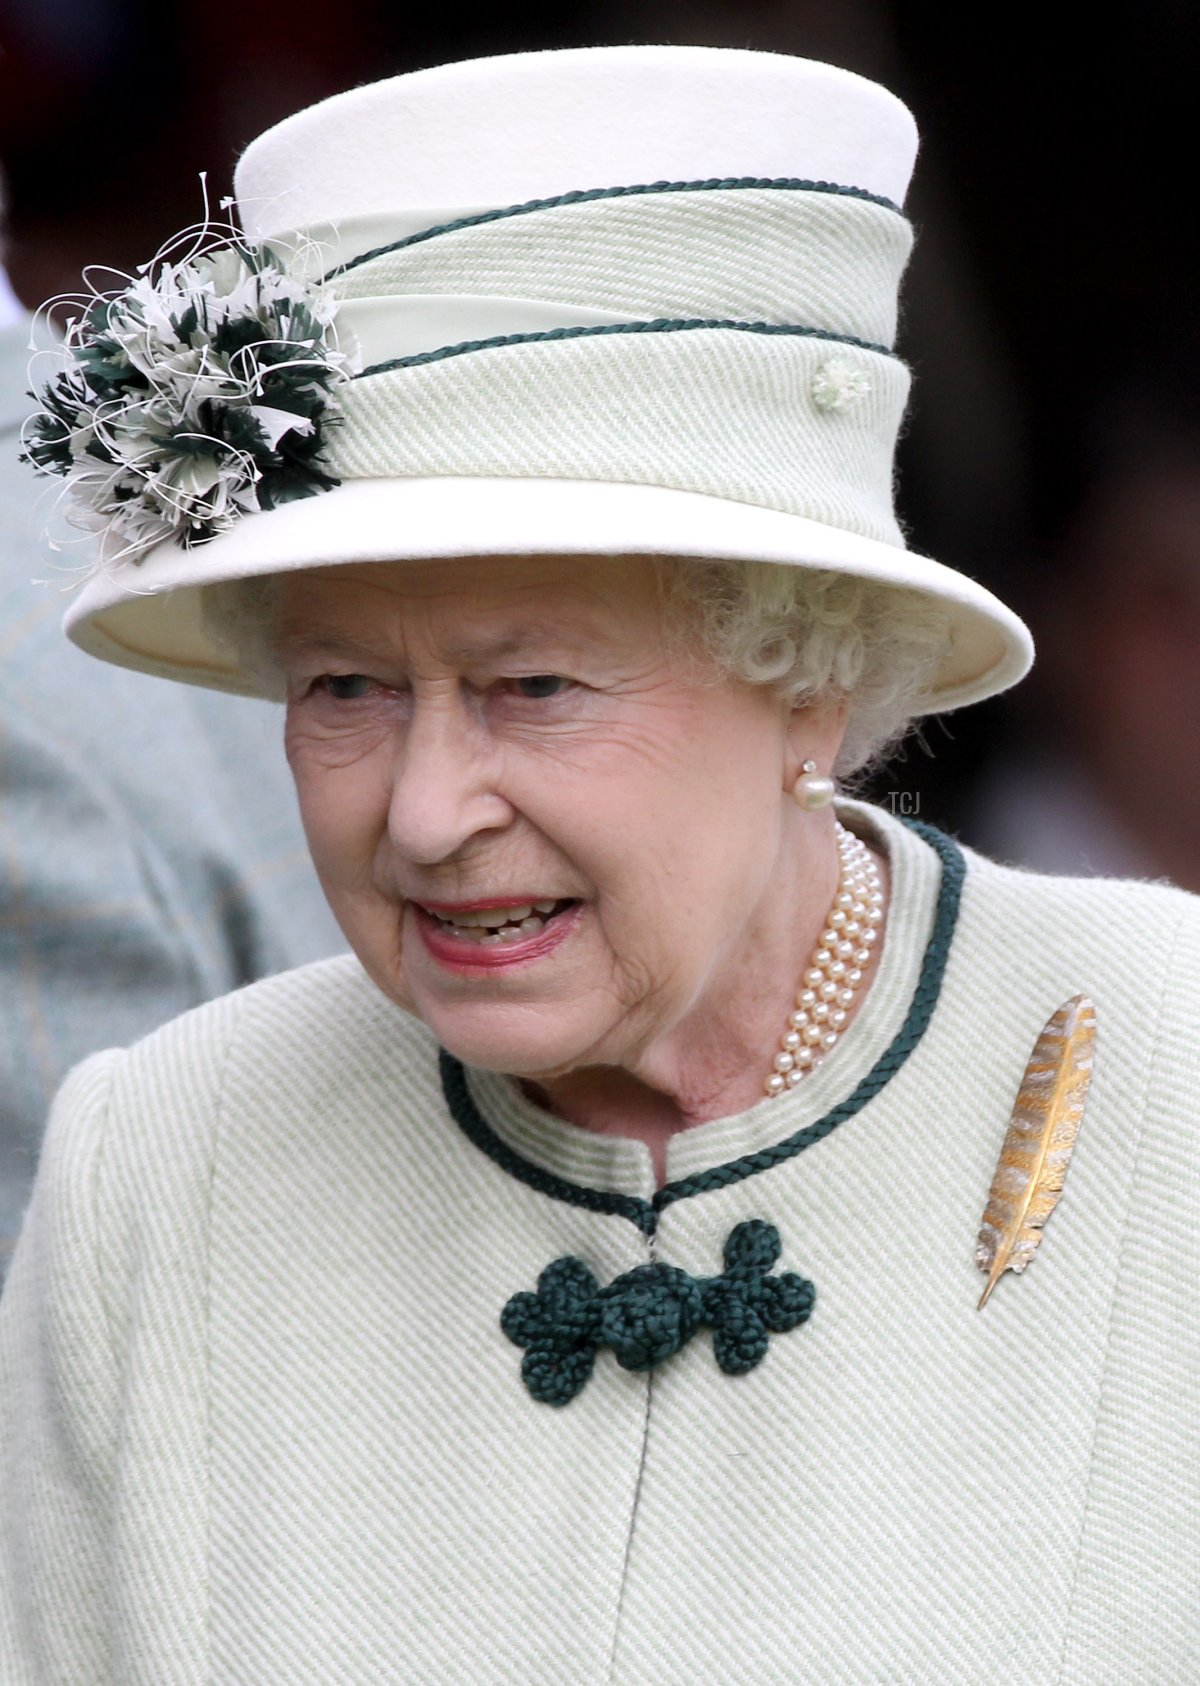 Queen Elizabeth II smiles as she looks out from the royal box during the Braemar Highland Games at The Princess Royal and Duke of Fife Memorial Park on September 4, 2010 in Braemar, Scotland